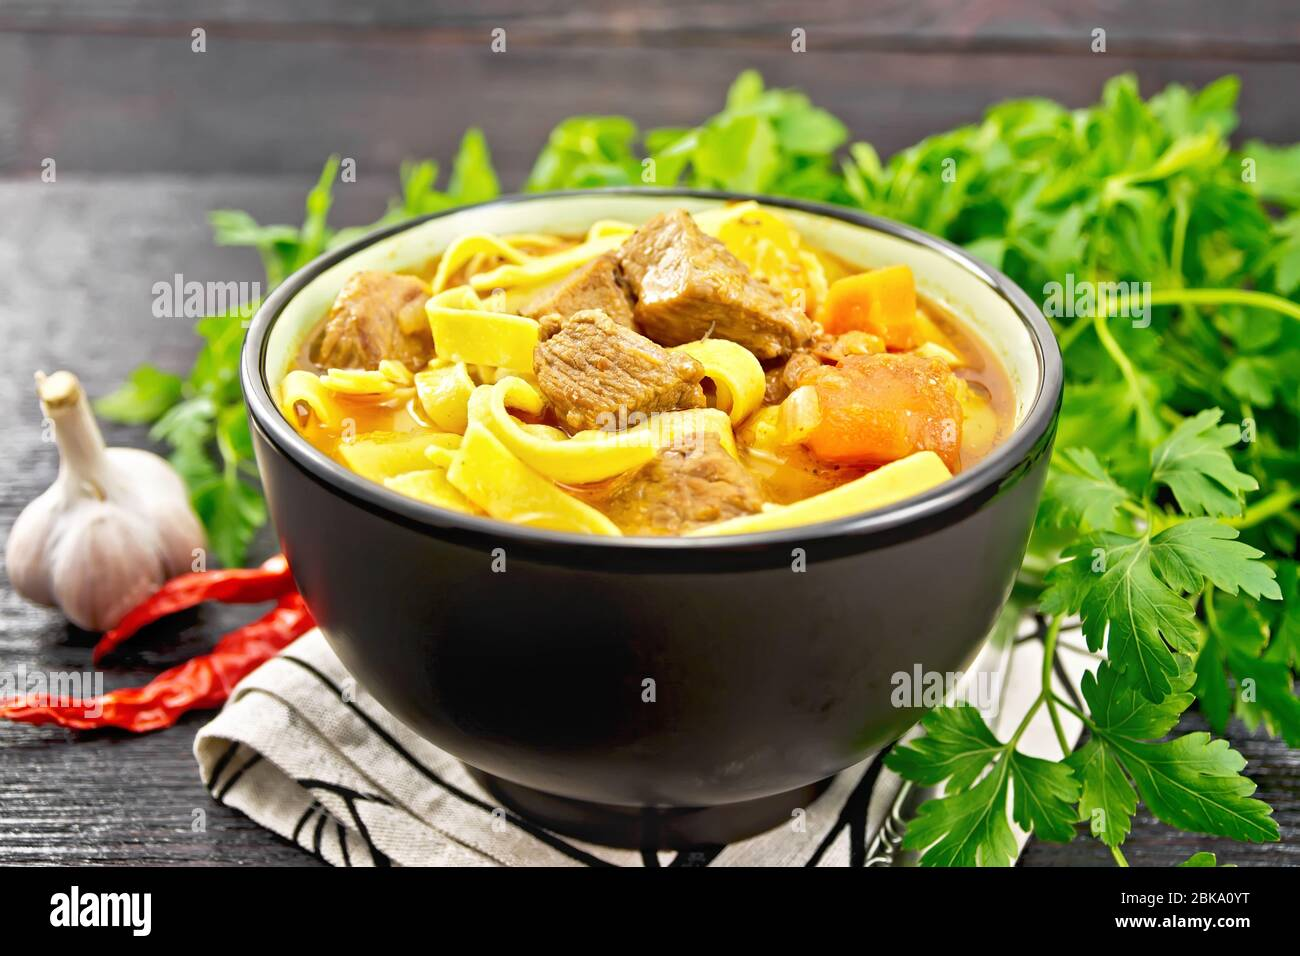 Central Asian national dish Lagman of meat, noodles and vegetables in bowl on a towel, garlic, parsley on wooden board background Stock Photo